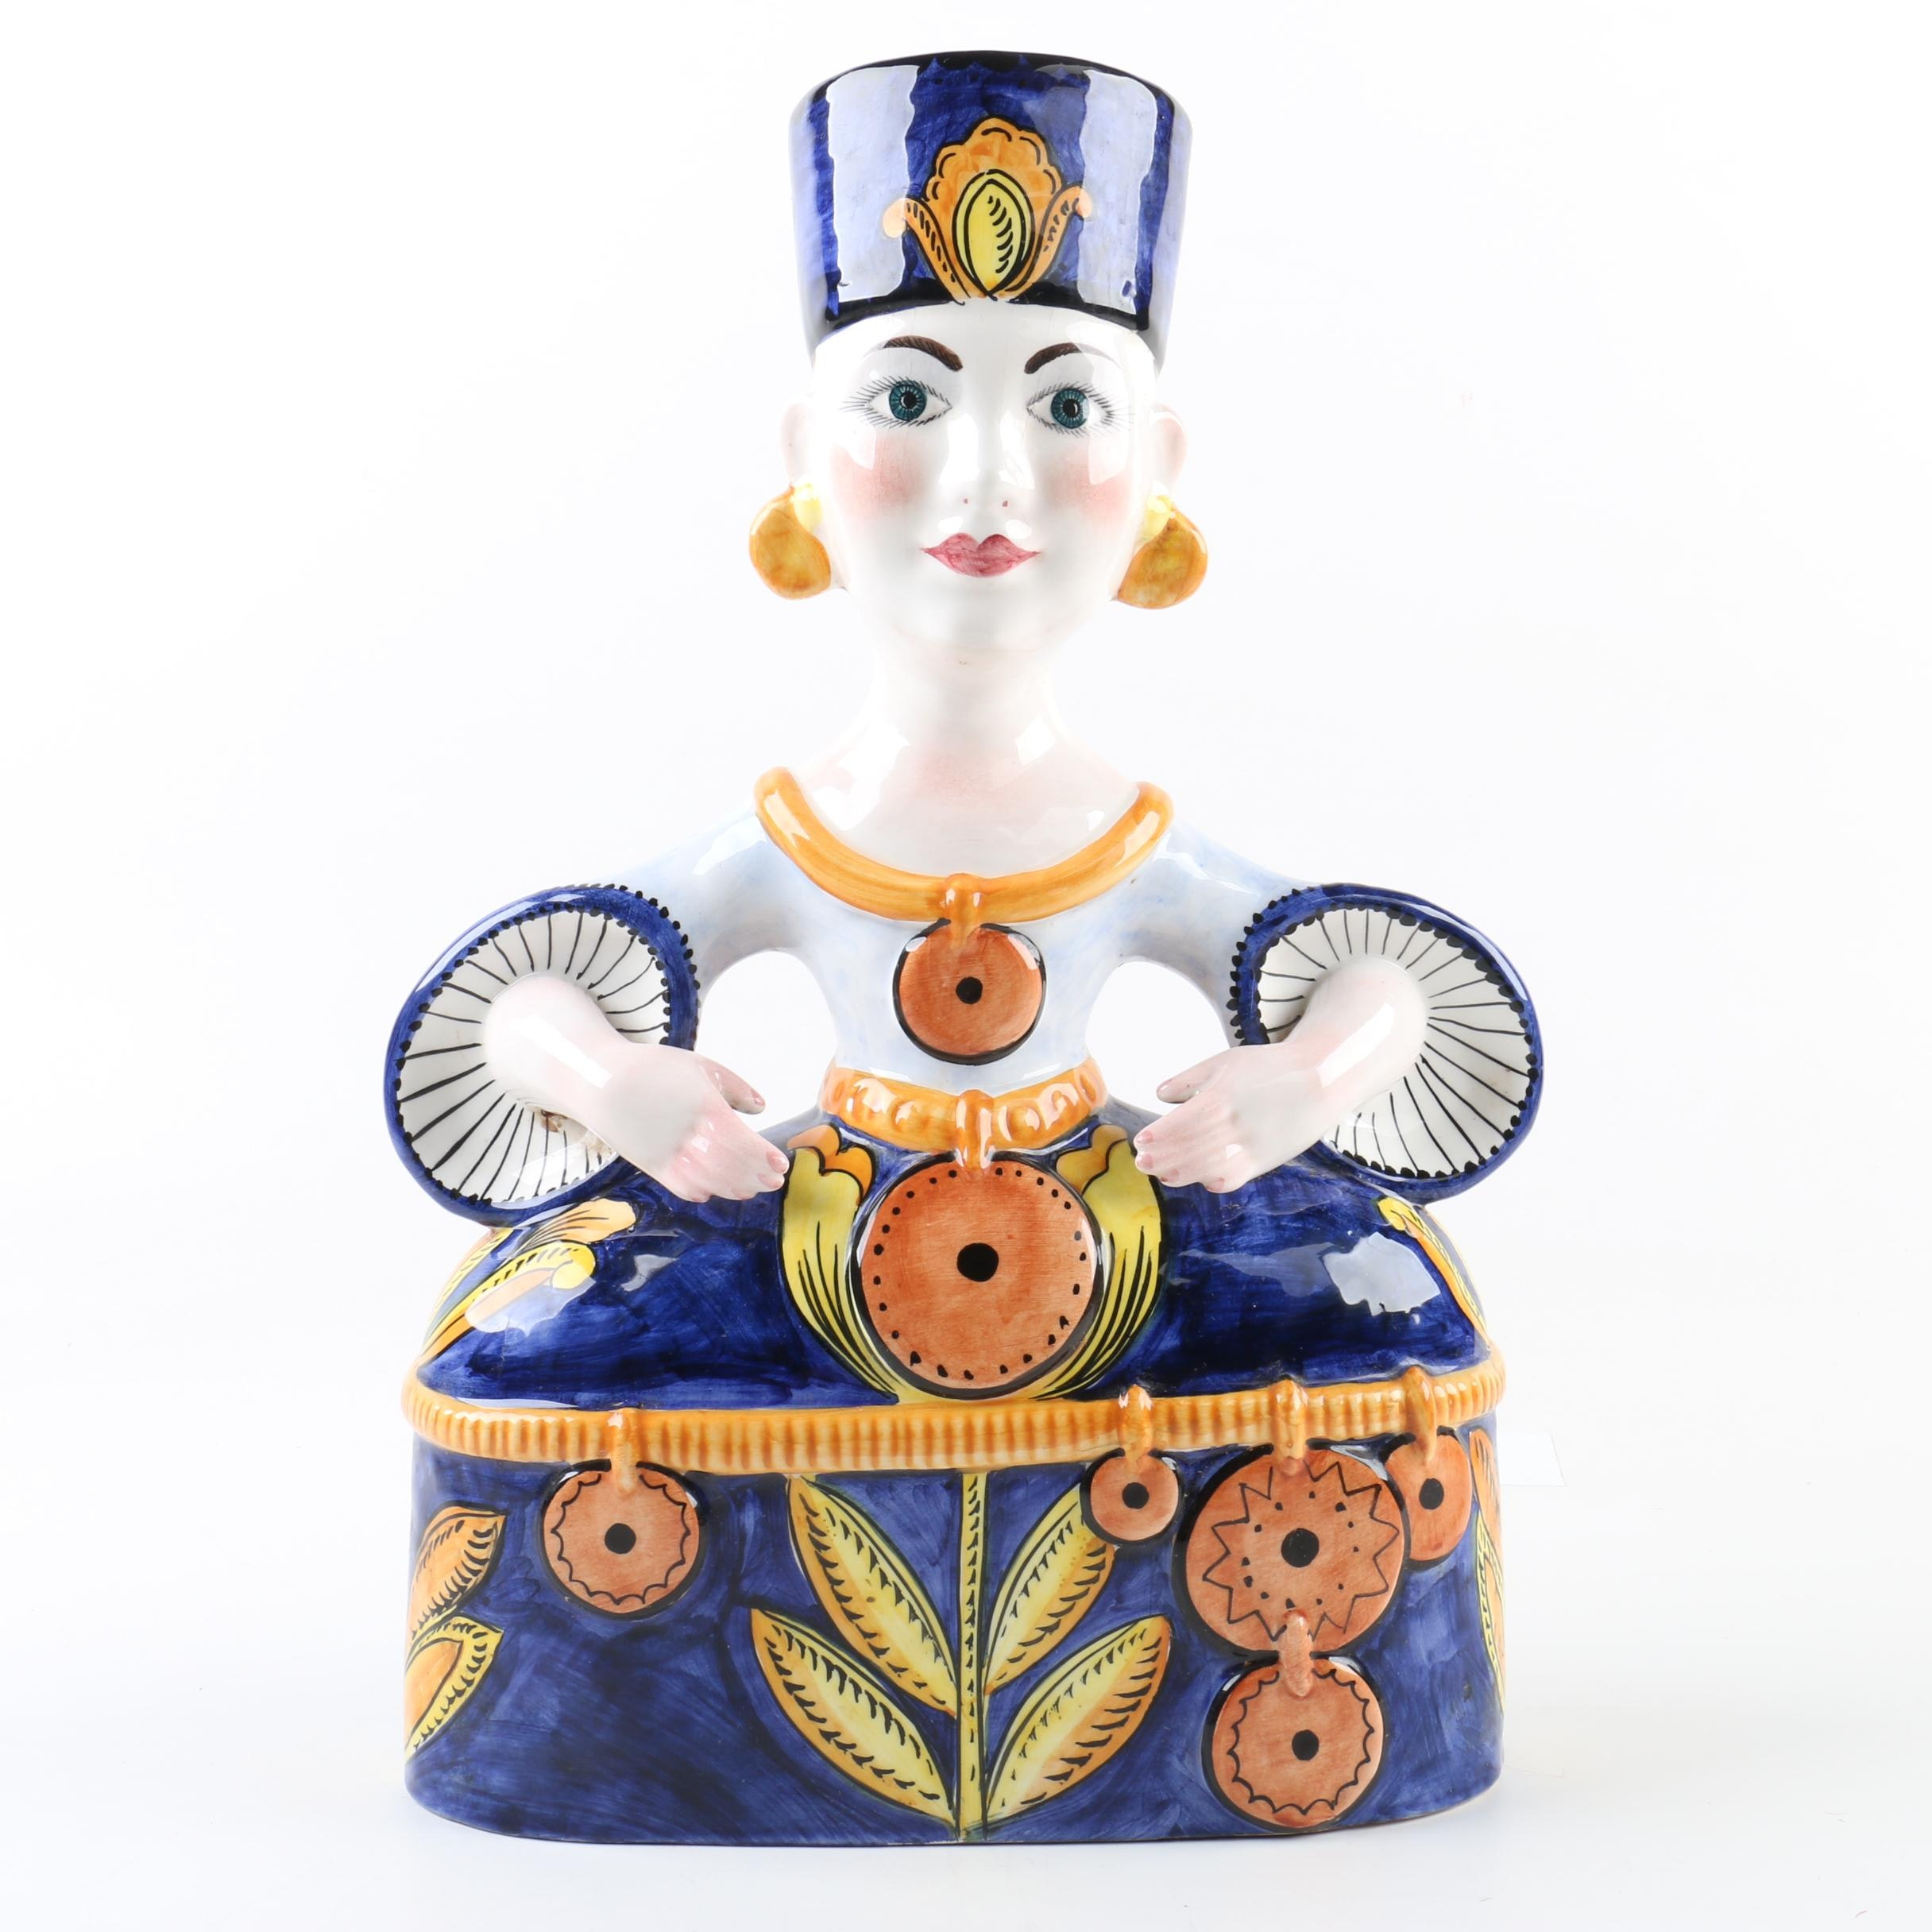 Hand-Painted Italian Ceramic Figurine